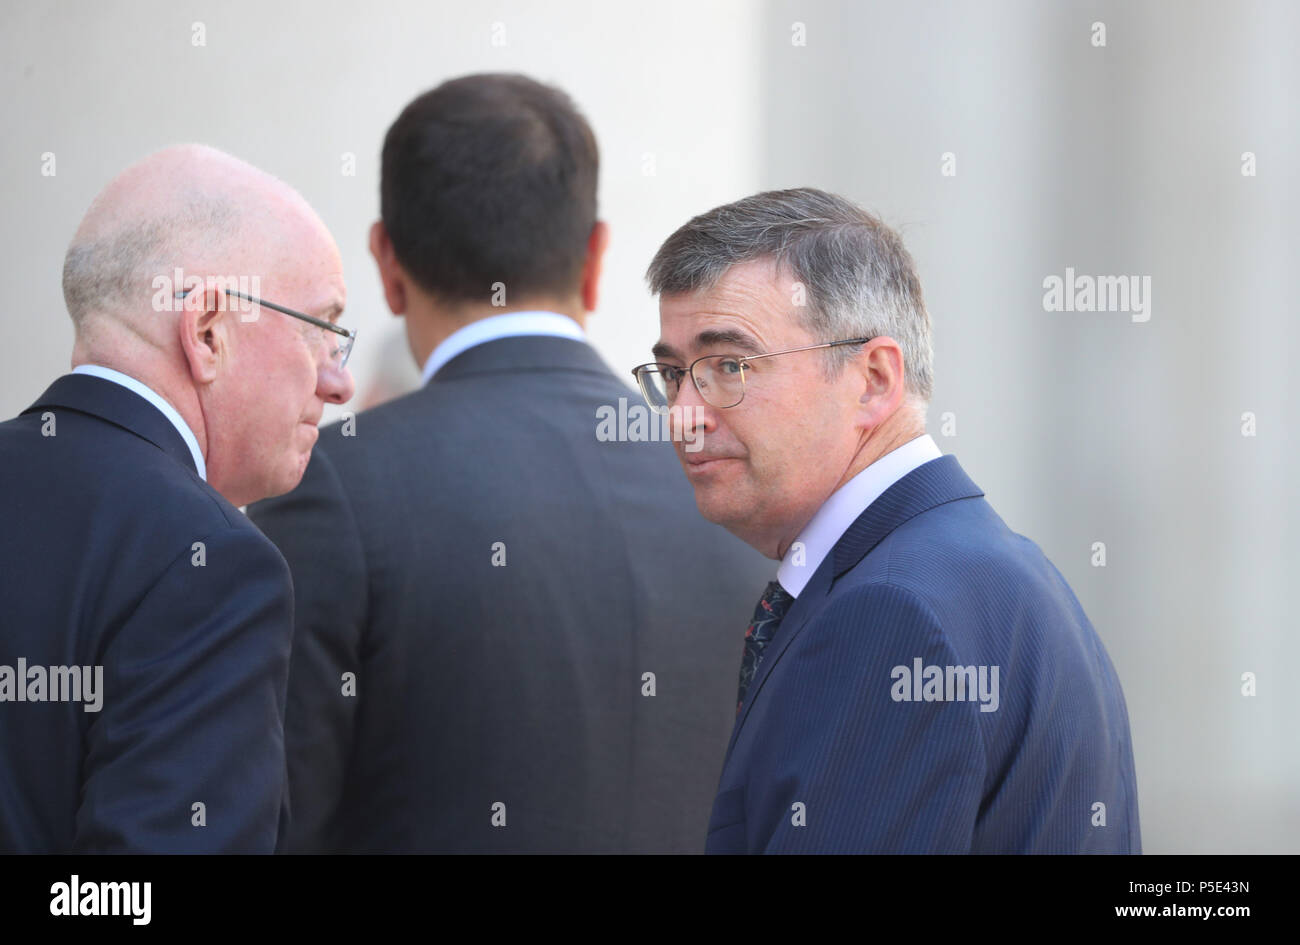 Taoiseach Leo Varadkar (centre)and Justice Minister Charles Flannigan (left) at the announcement of Drew Harris (right) as the new Garda Commissioner at the government buildings in Dublin. - Stock Image